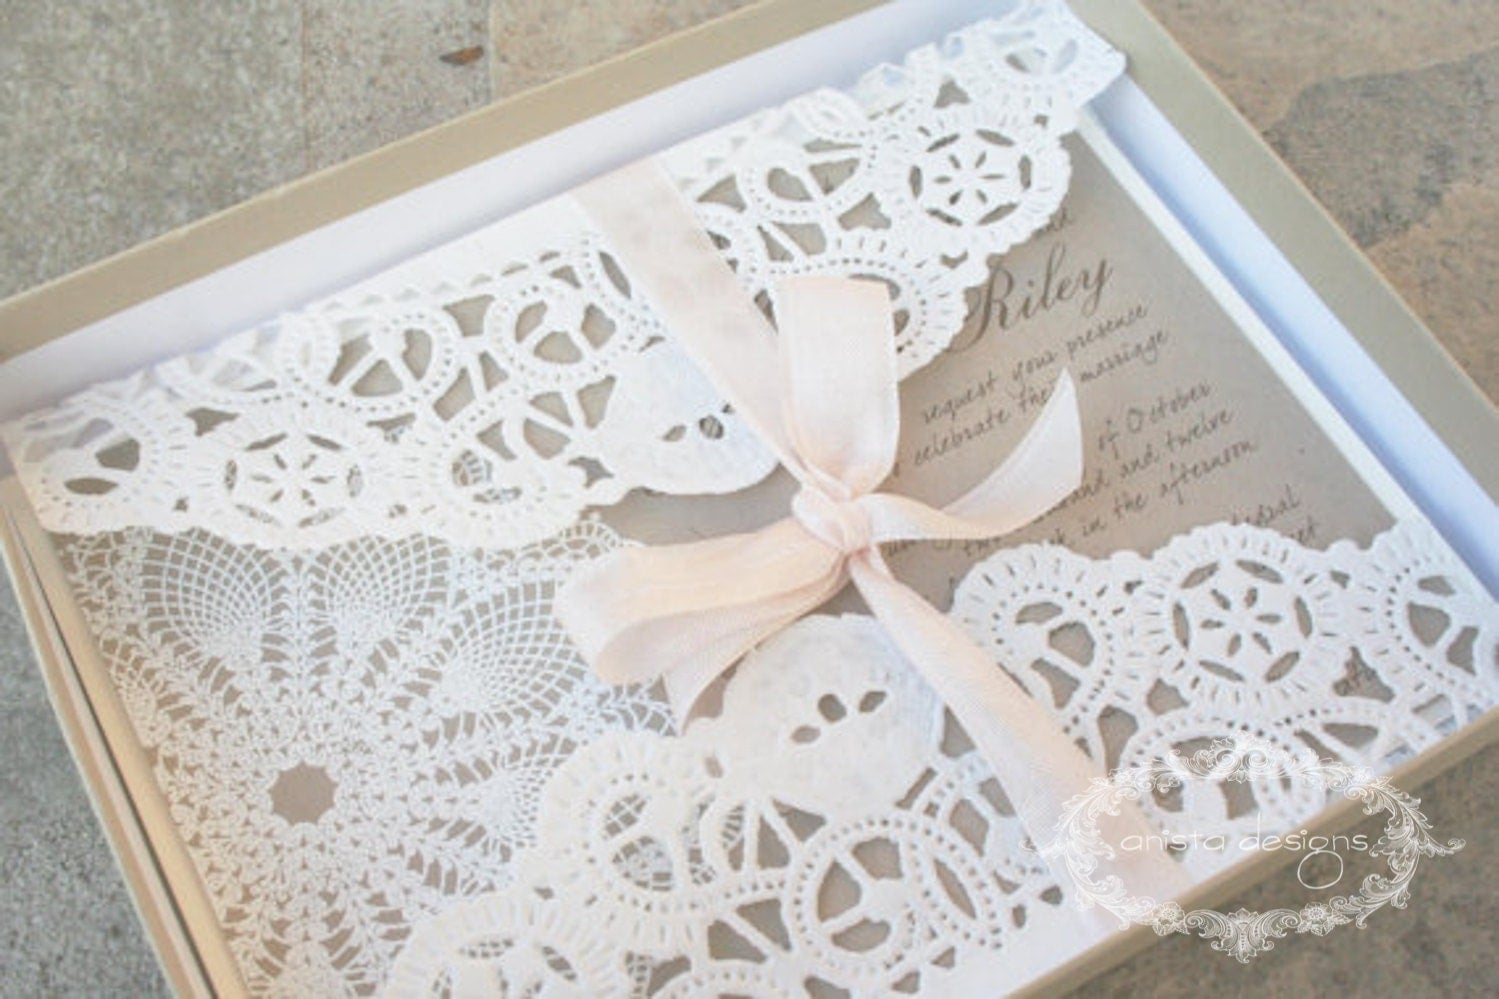 Lace Wedding Invitation: SALE: Vintage Lace Wedding Invitation Lace Doily Featured